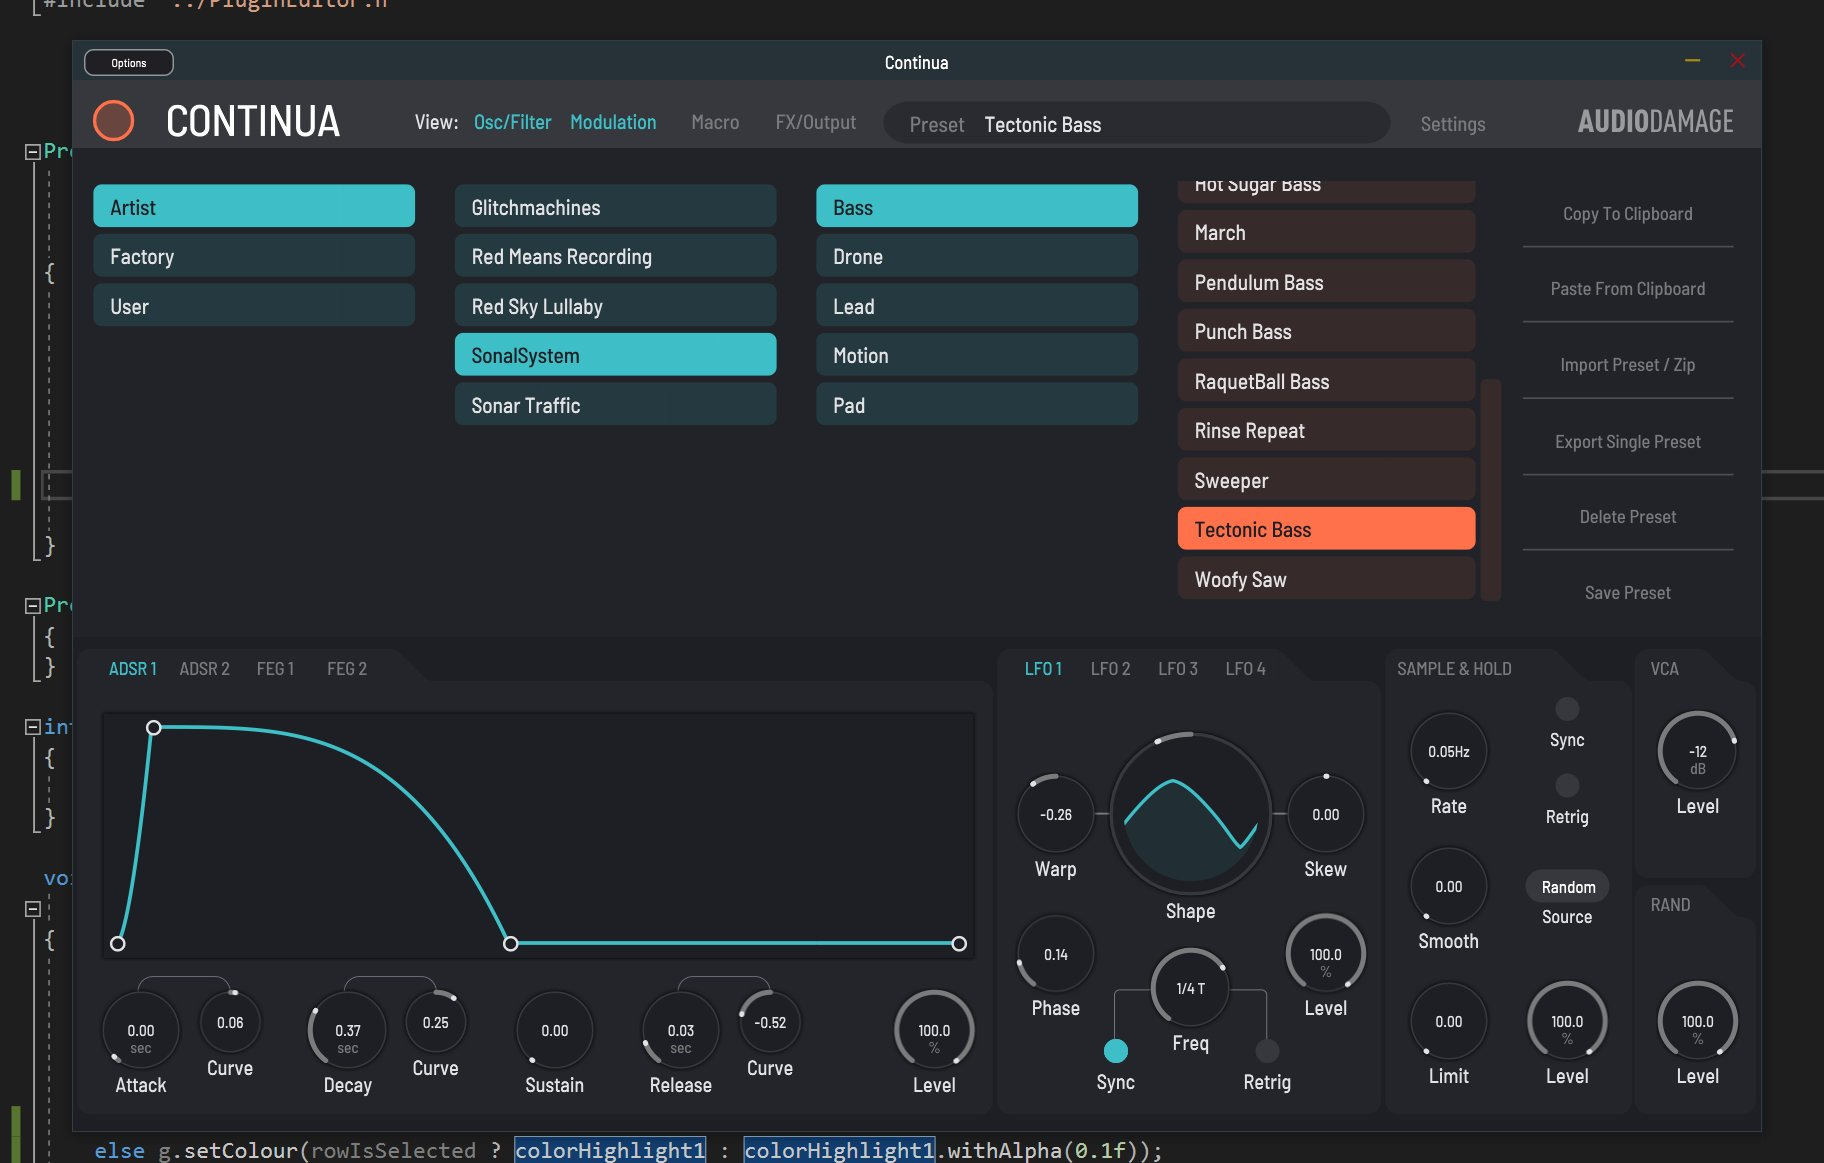 Adding the new preset manager to Continua today. So much better. https://t.co/pfGg0LJOVS